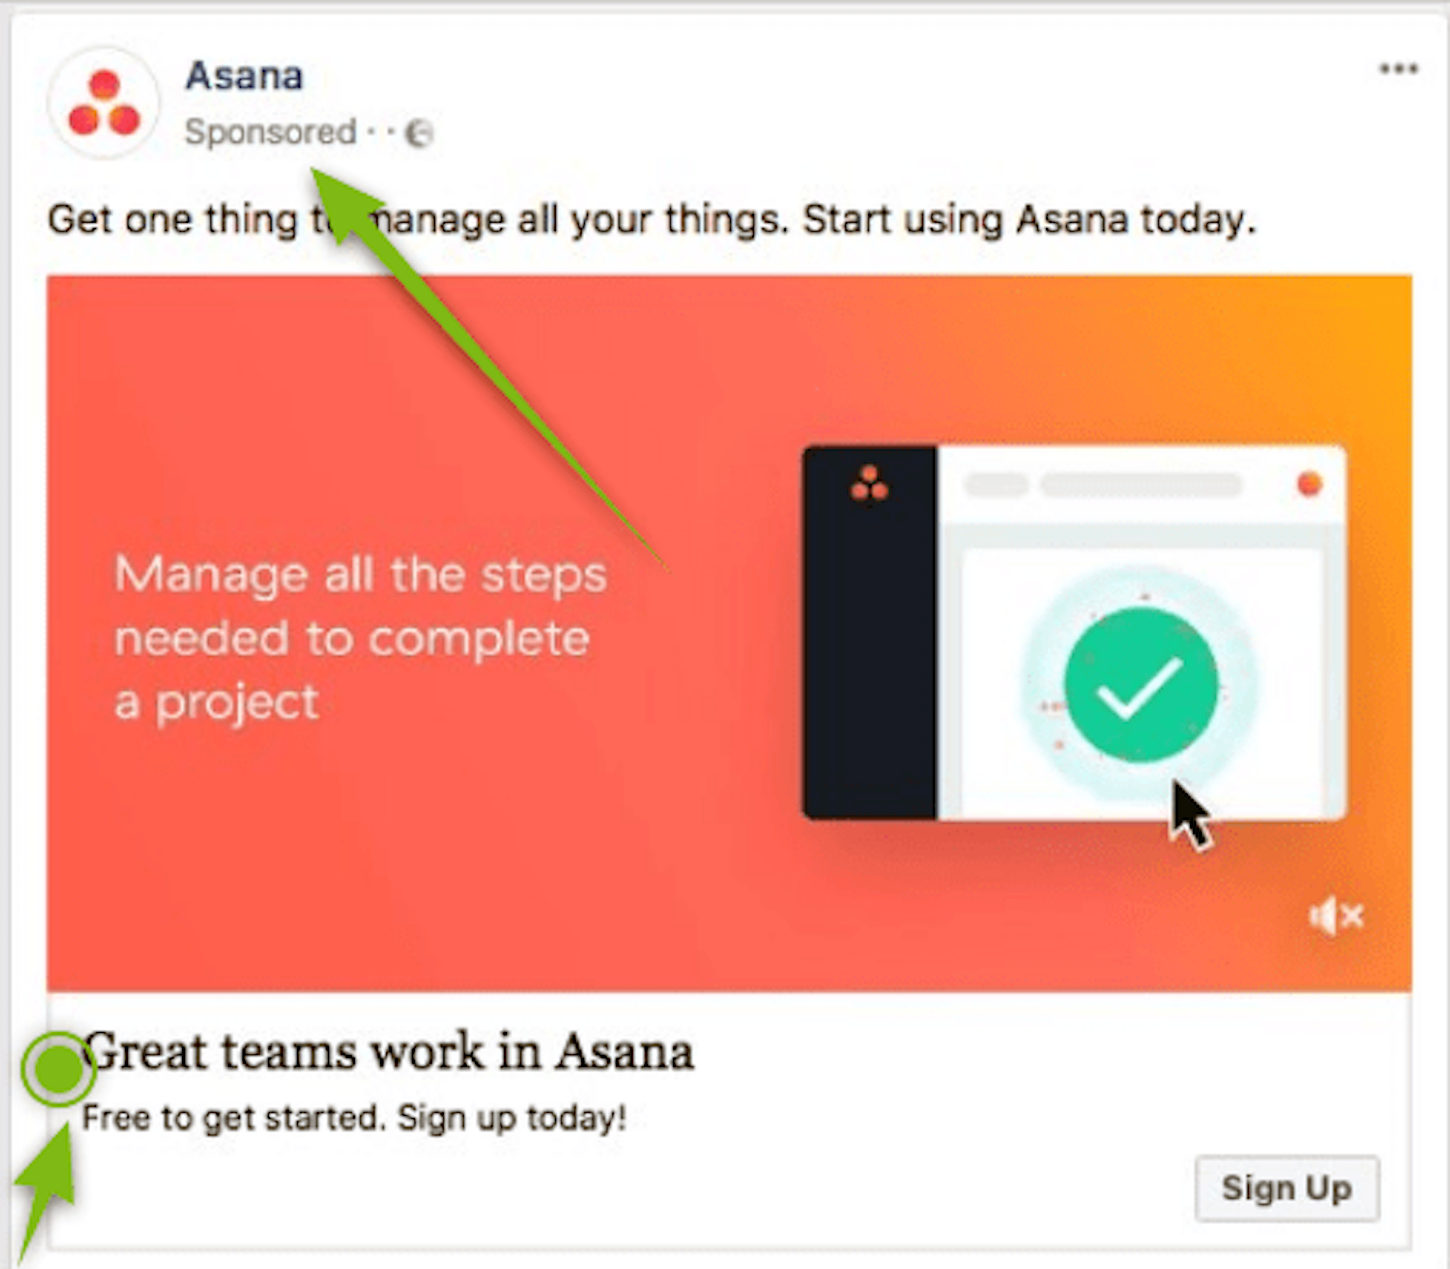 content marketing funnel: asana ad